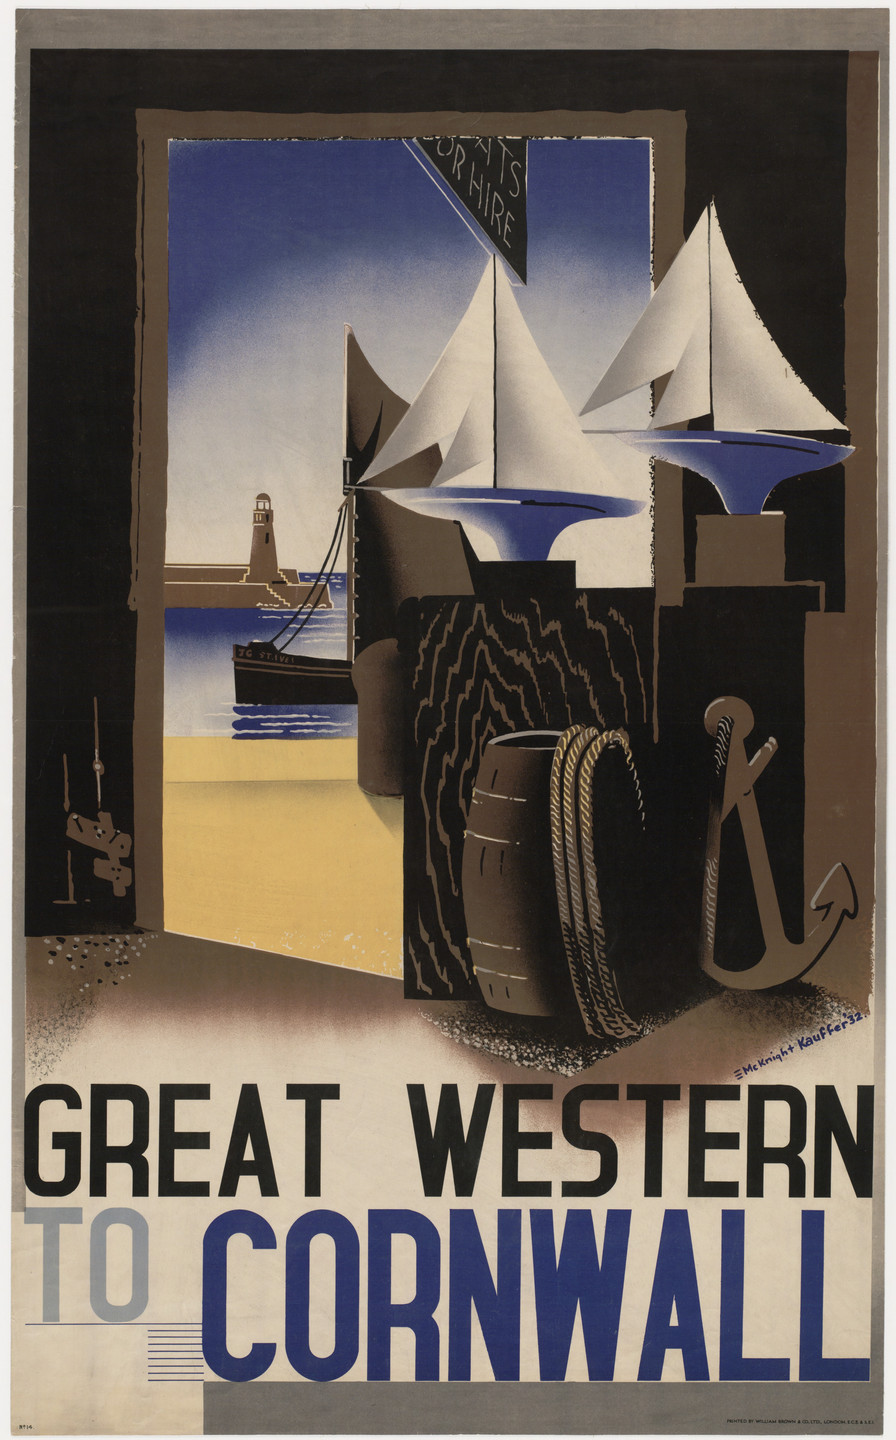 E. McKnight Kauffer. Great Western to Cornwall. 1932